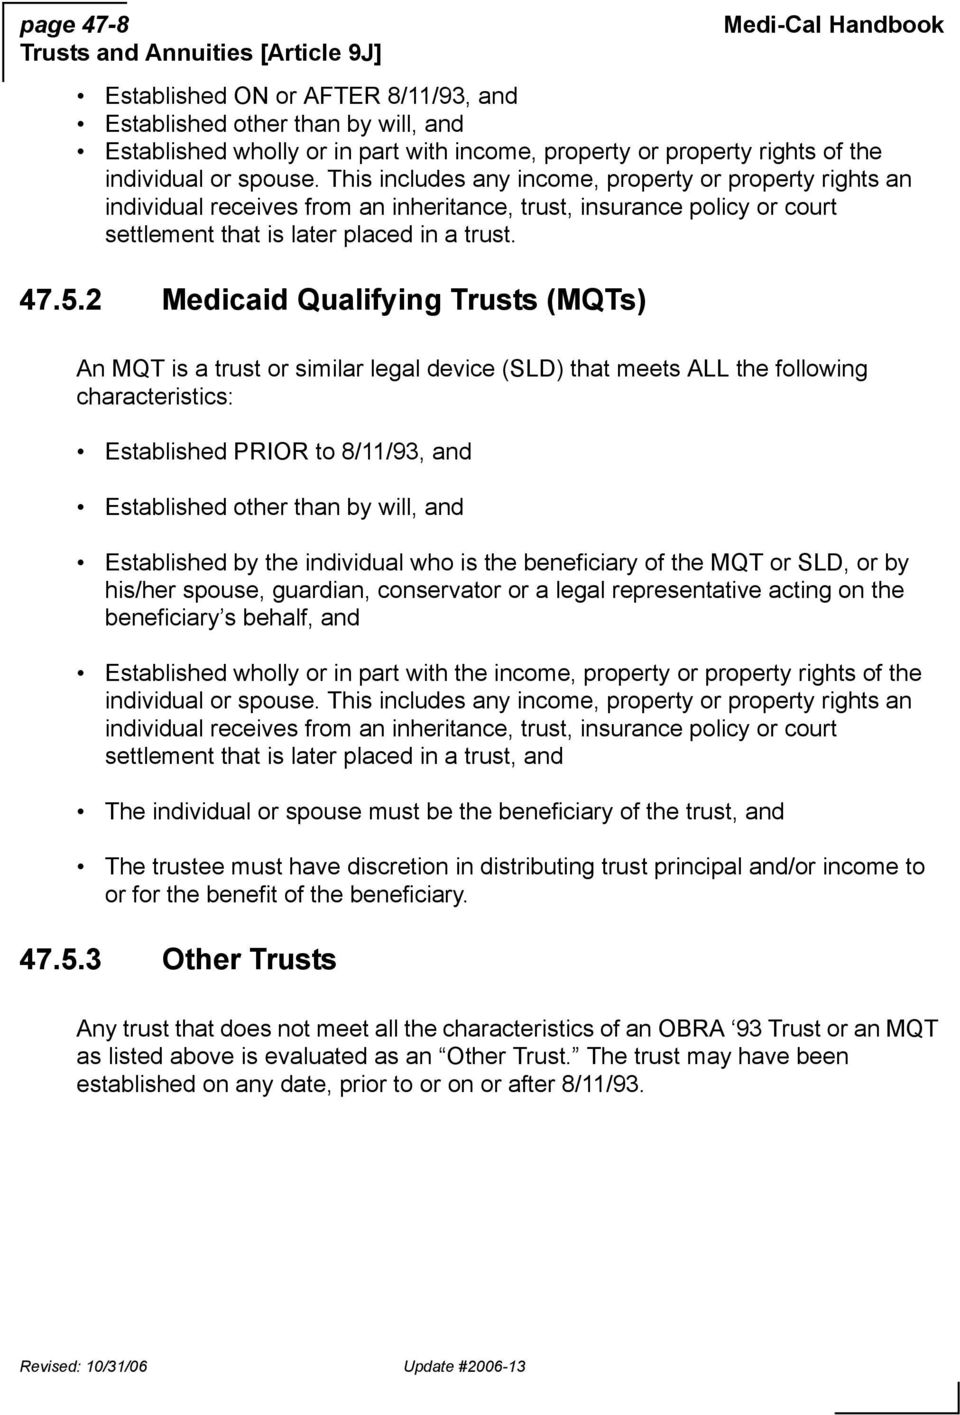 2 Medicaid Qualifying Trusts (MQTs) An MQT is a trust or similar legal device (SLD) that meets ALL the following characteristics: Established PRIOR to 8/11/93, and Established other than by will, and